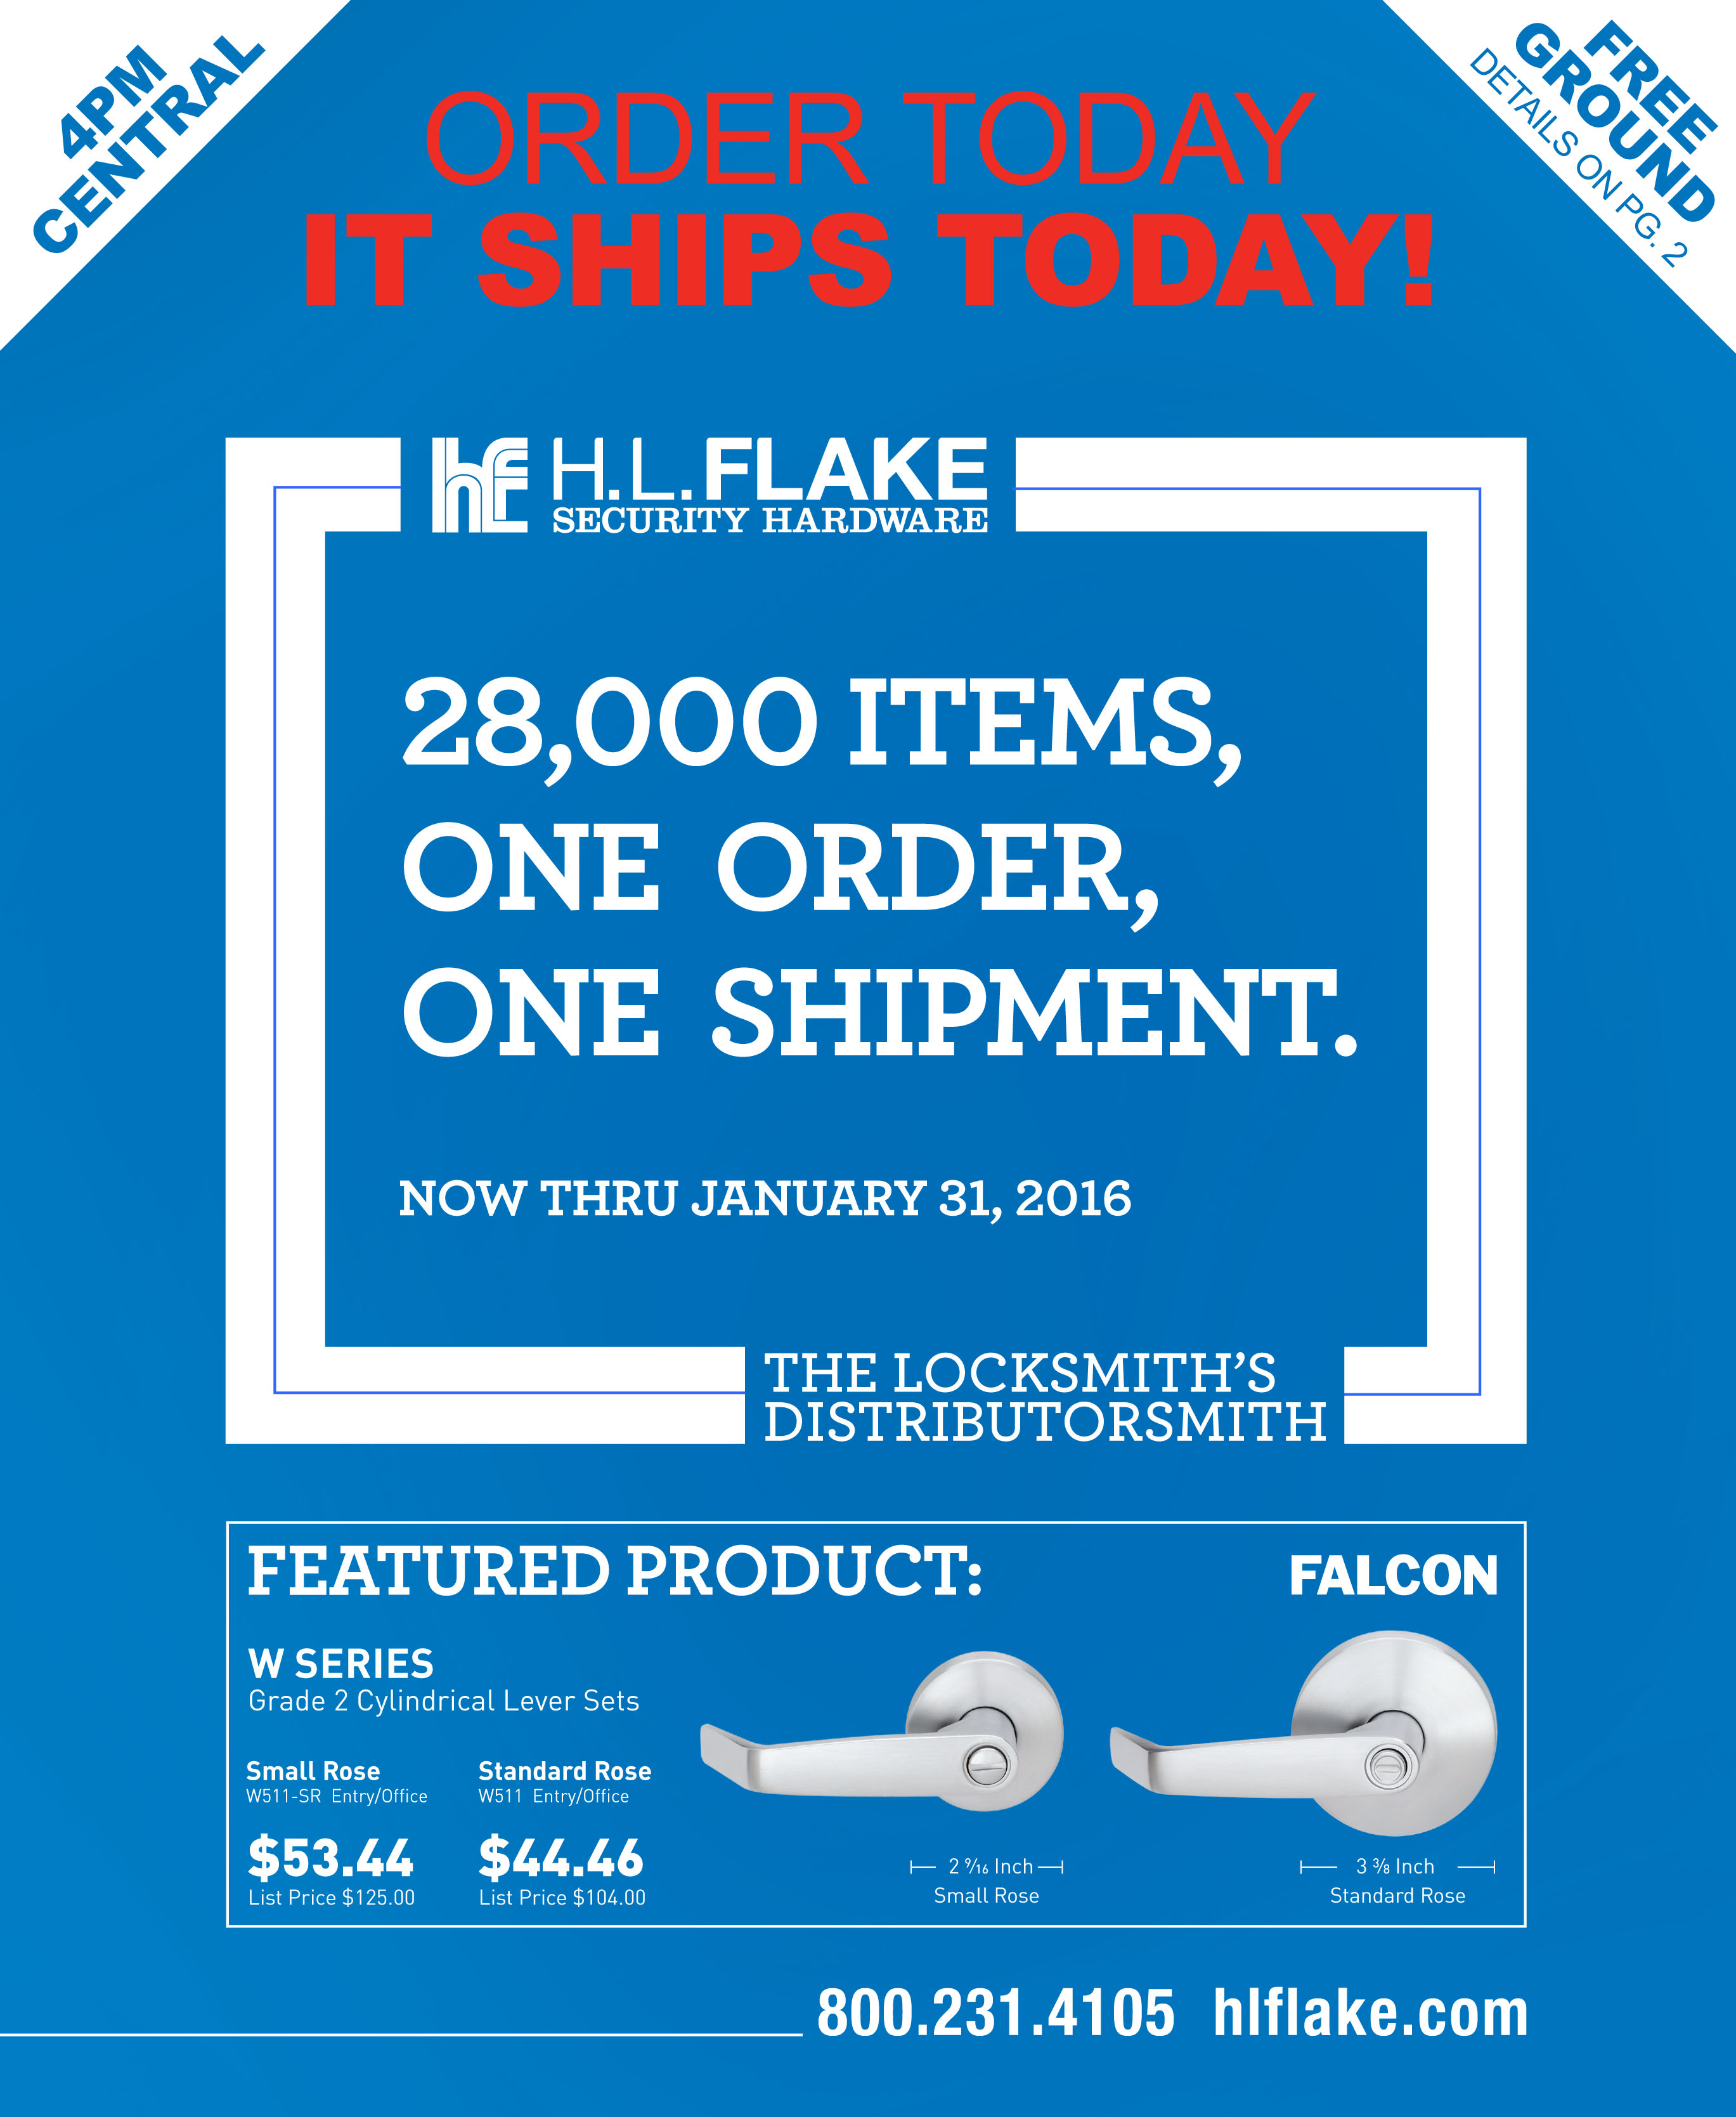 Hl Stock Quote Hlflake Announces Expanded Product Offering Of 28000 Instock